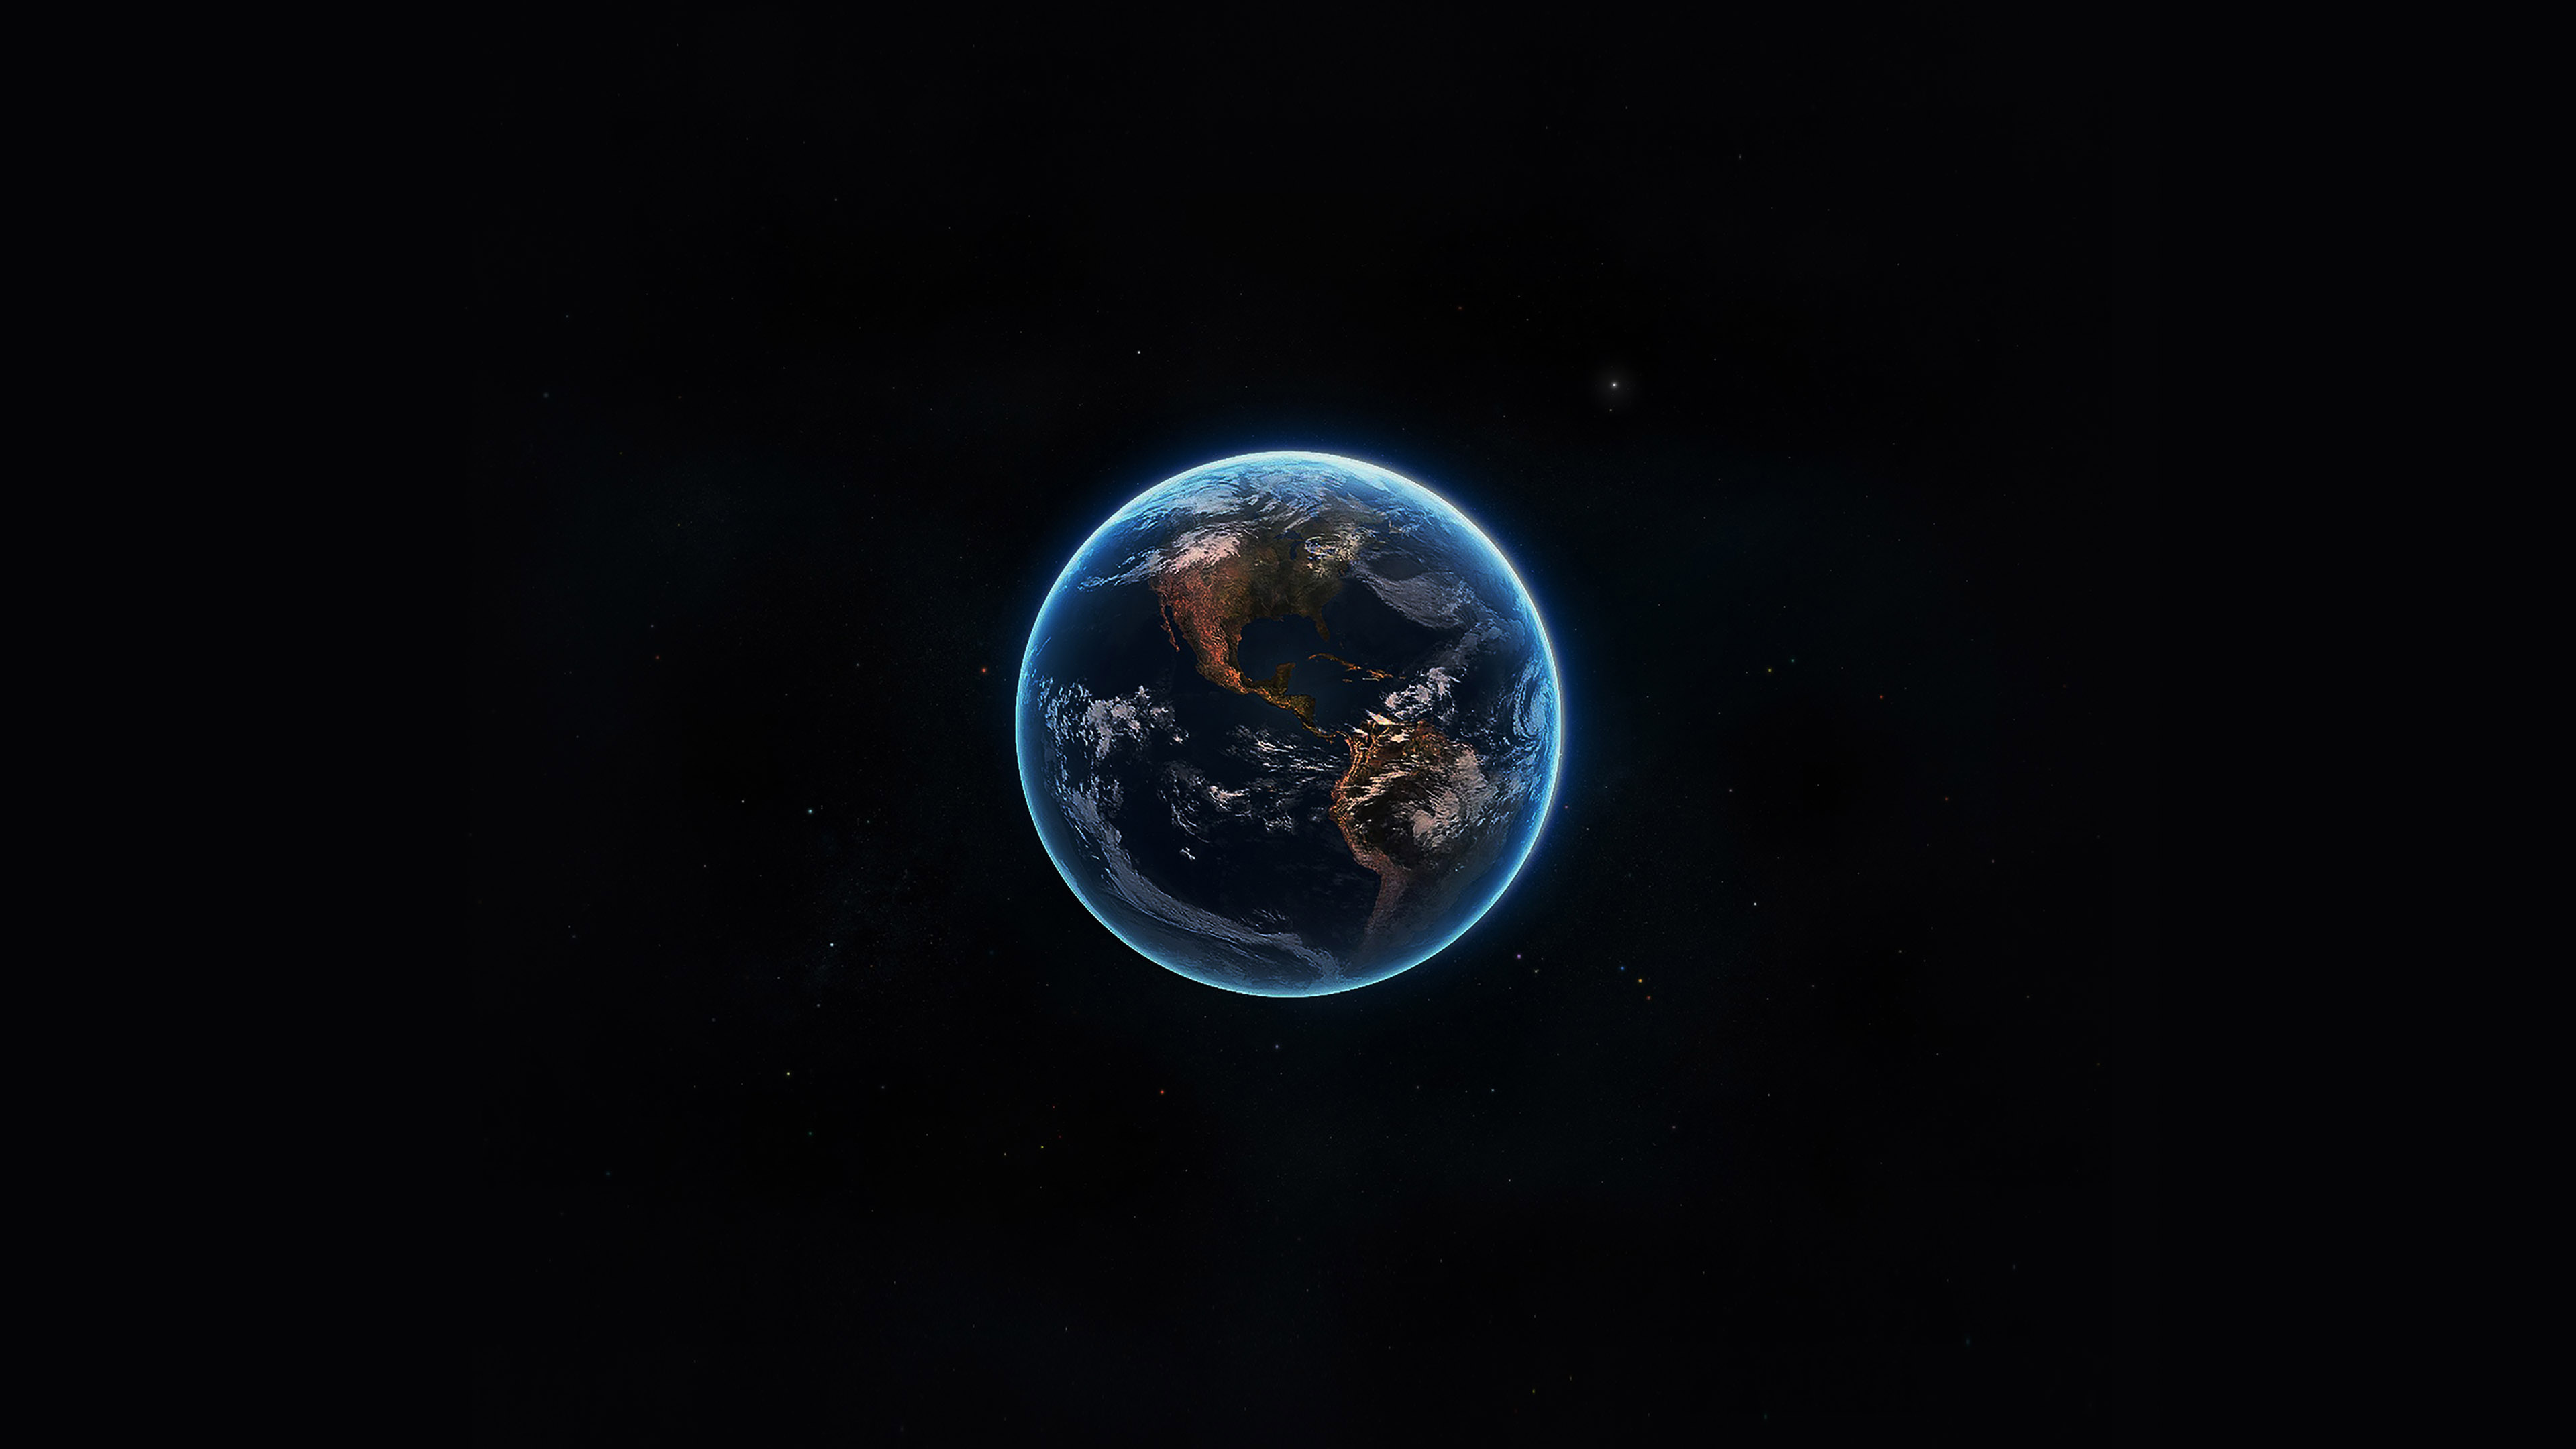 earth from space 20 - photo #6